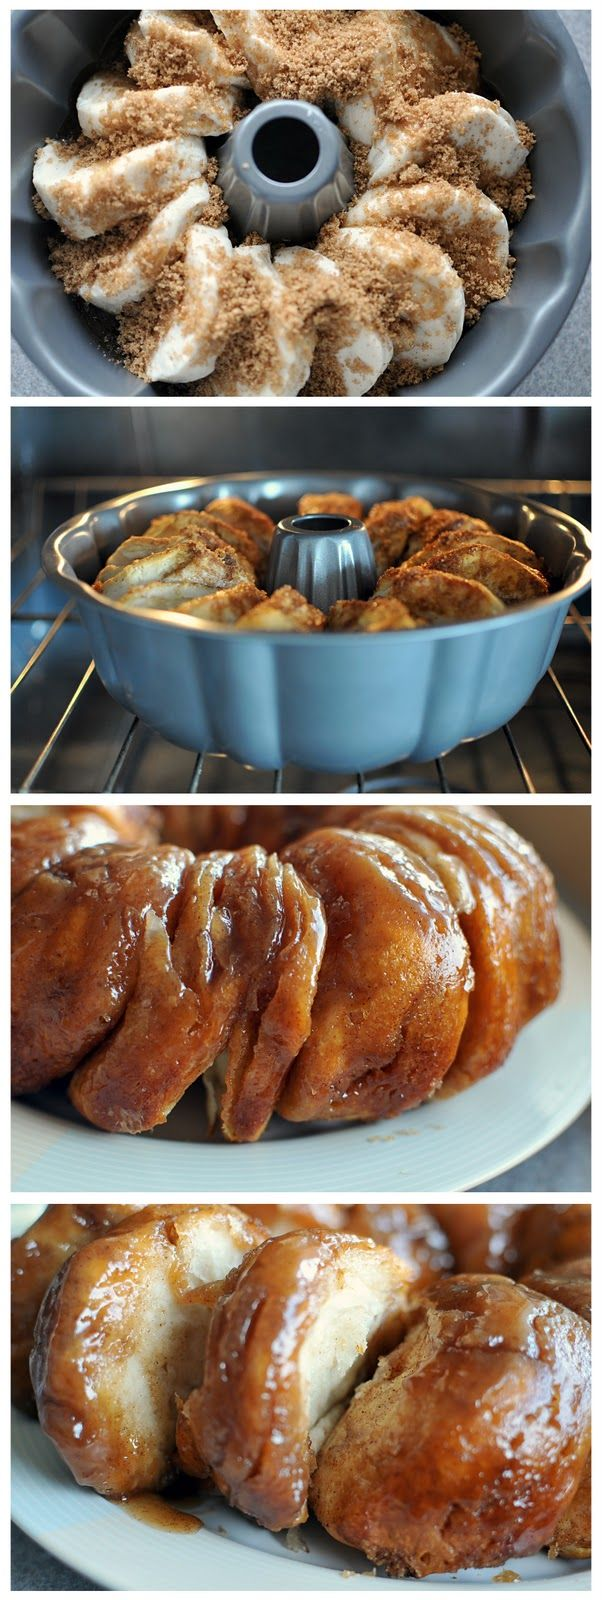 Sticky Bun Breakfast RingMonkeys Breads, Monkey Bread, Breakfast Rings, Biscuits Cinnamon Rolls, Breakfast Idea, Christmas Mornings, Sticky Buns, Buns Breakfast, Food Recipe